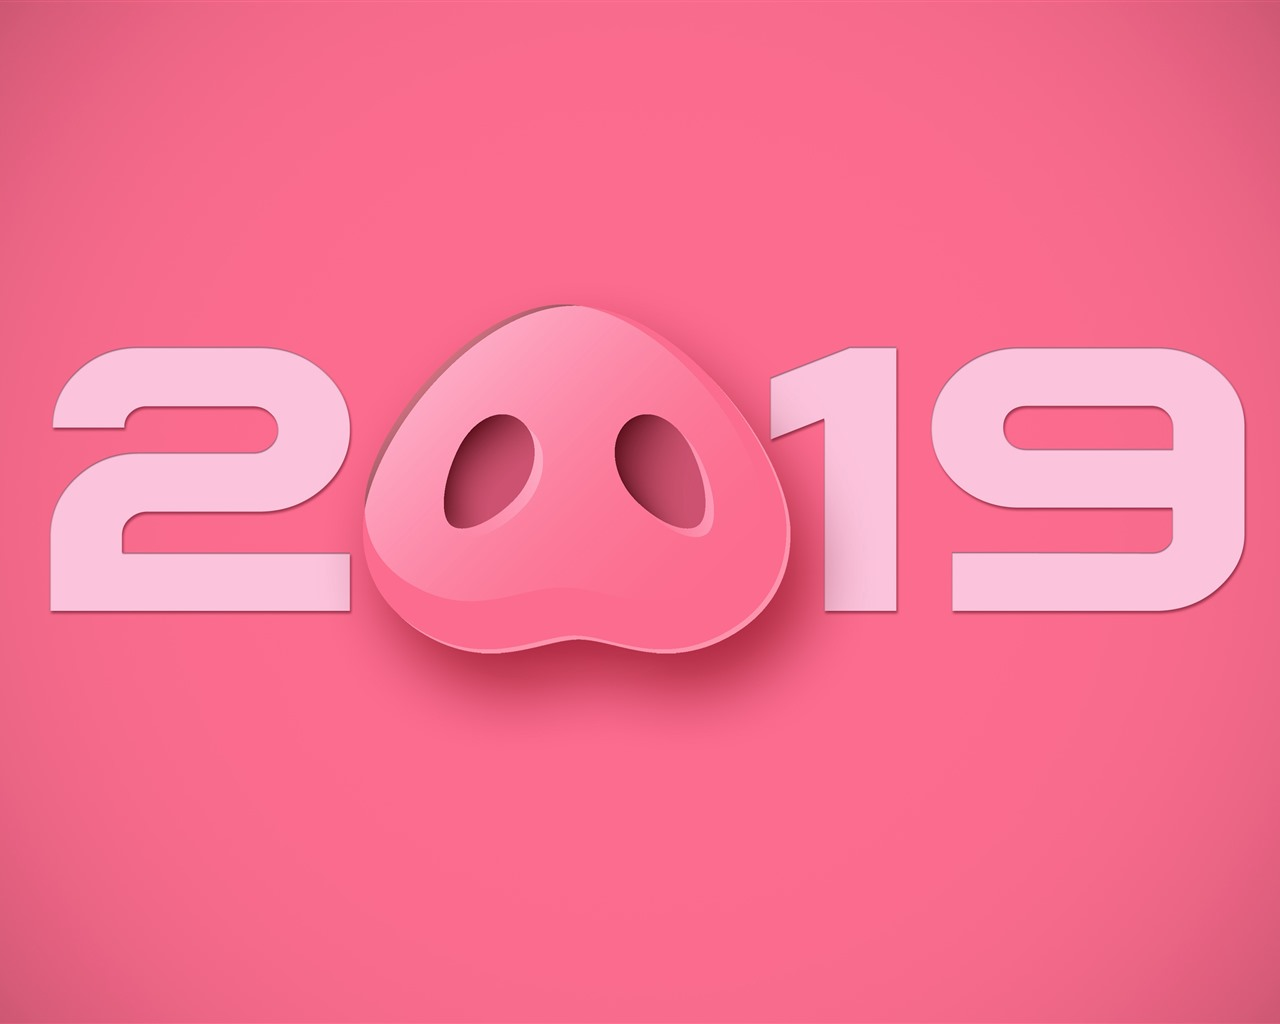 Beautiful Wallpapers For Iphone 6 Plus Wallpaper Happy New Year 2019 Pig Nose Pink Style